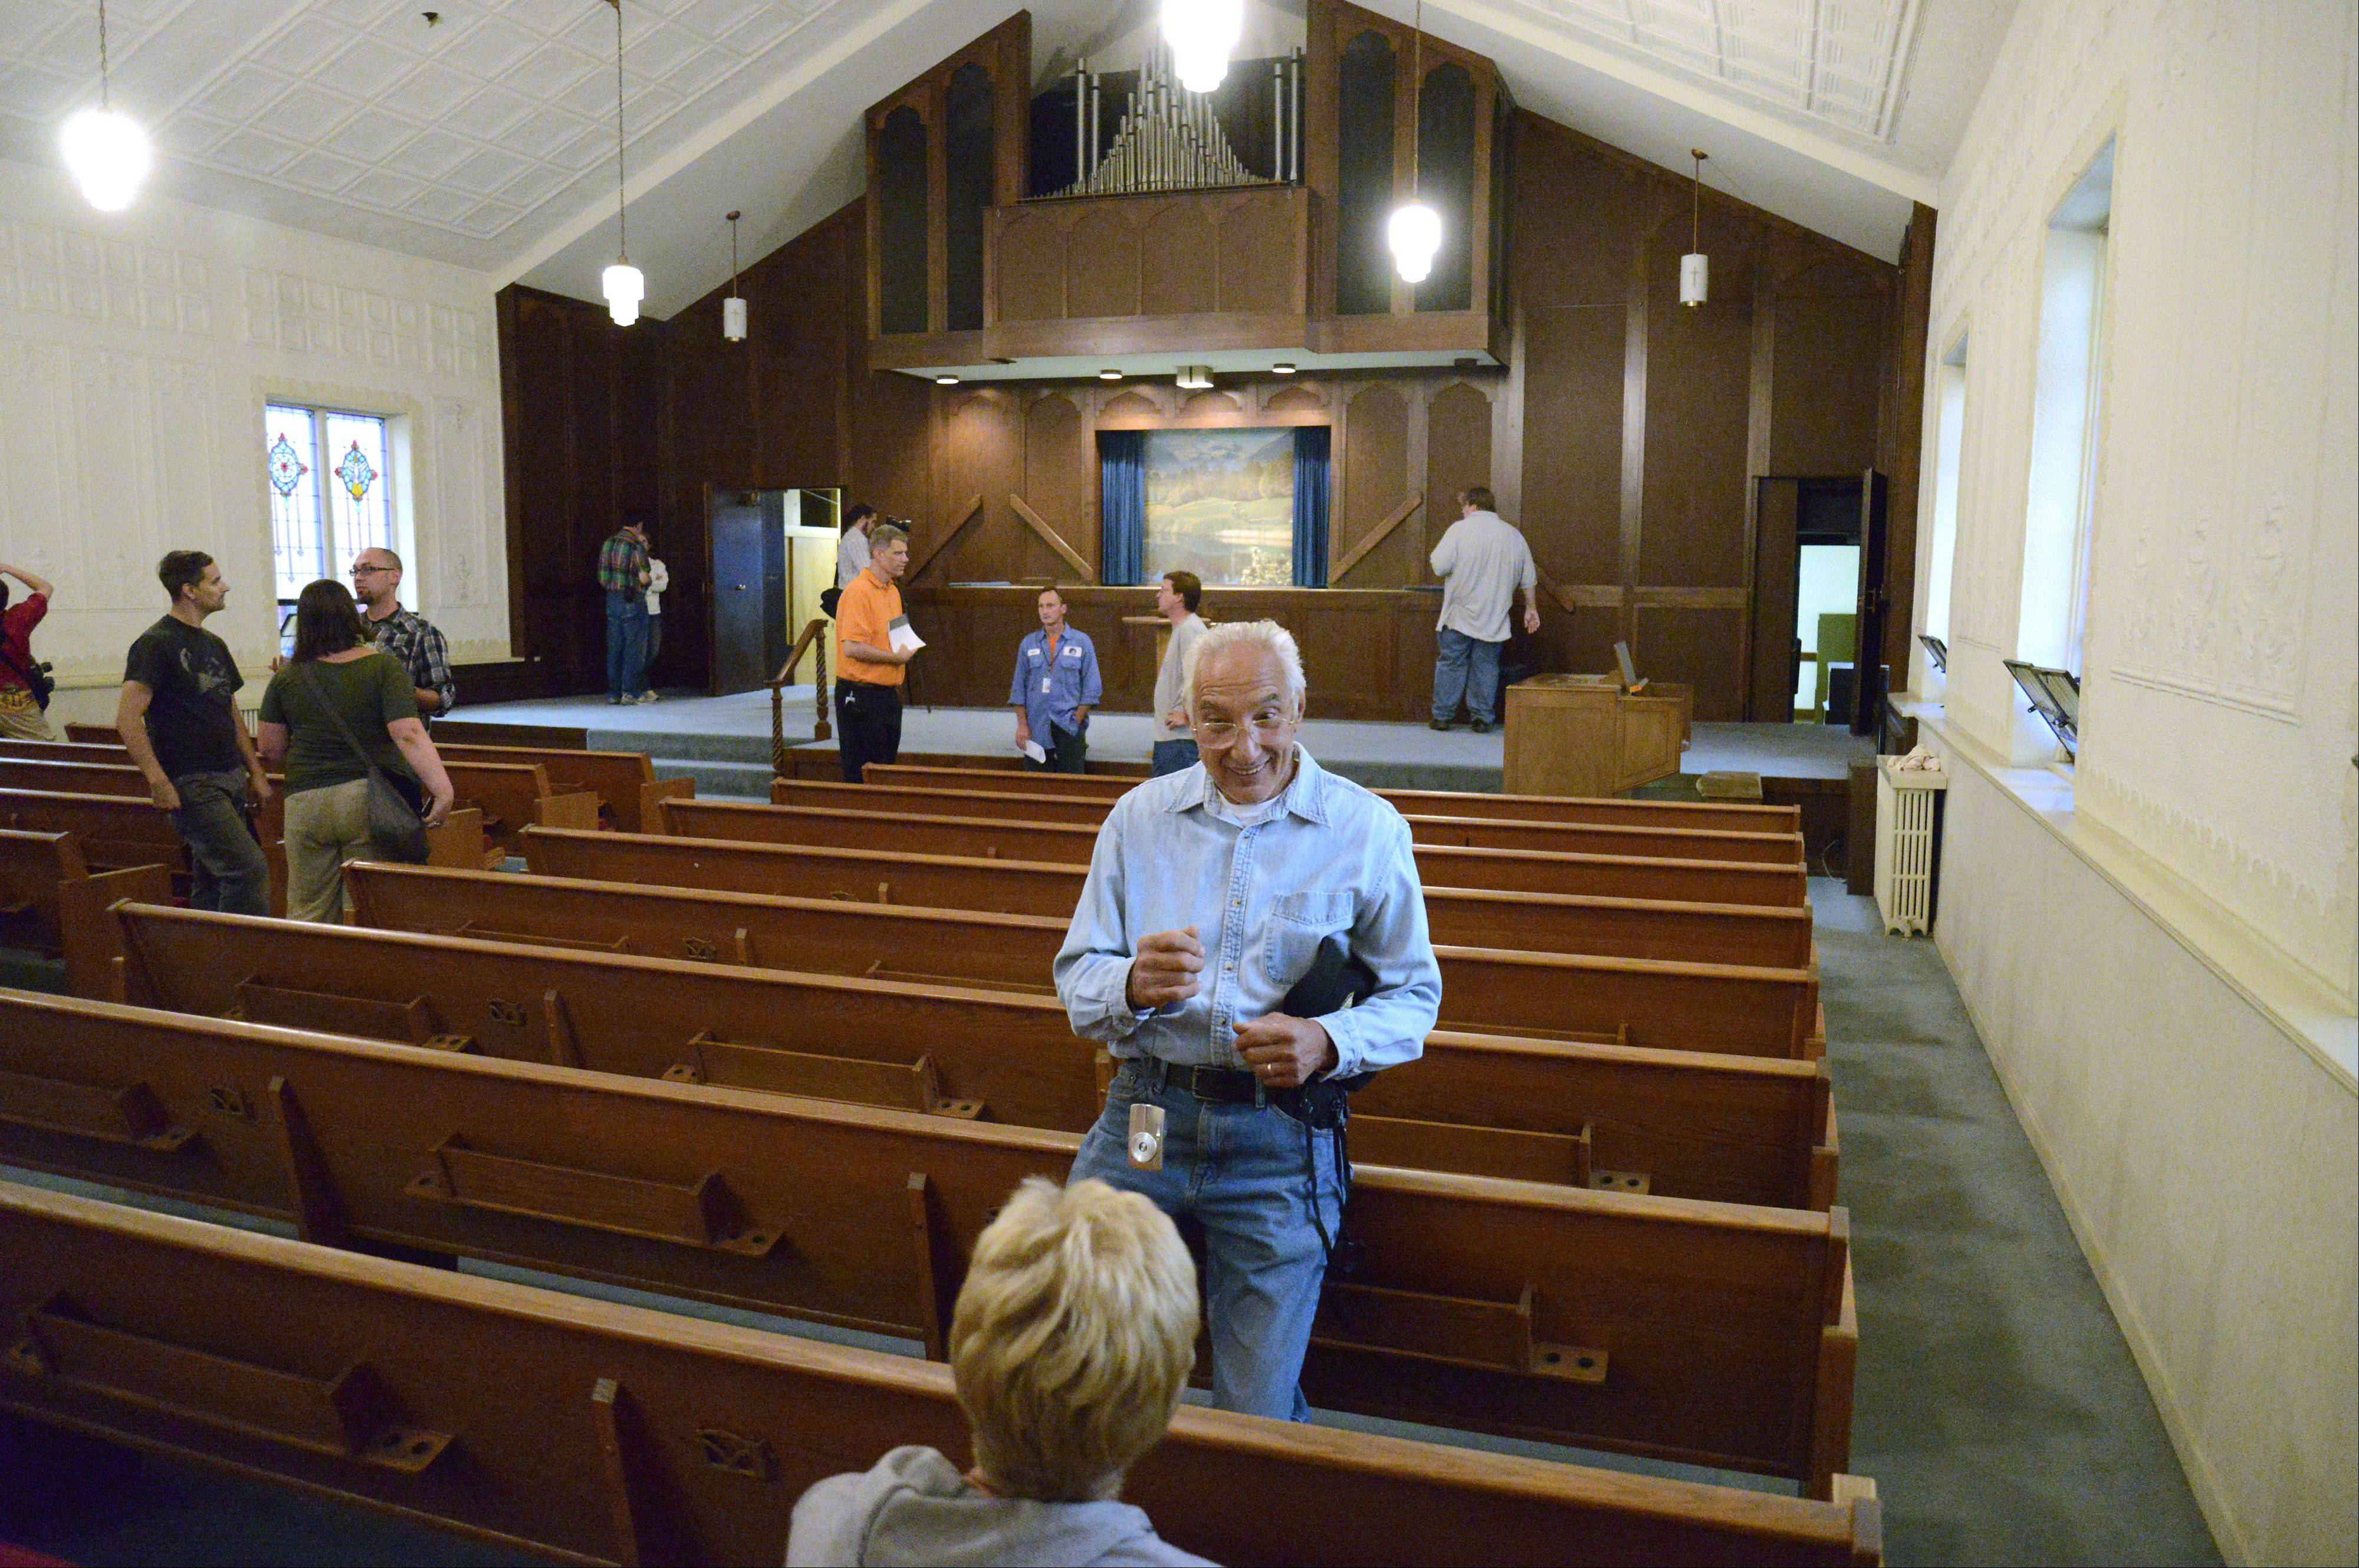 Art de la Cruz shares his memories of growing up in the First Baptist Church congregation to friend Sandy Eckblade on a tour of the building Tuesday. The city owns the building and is considering whether to tear some or all of it down or do some repairs while awaiting a buyer.